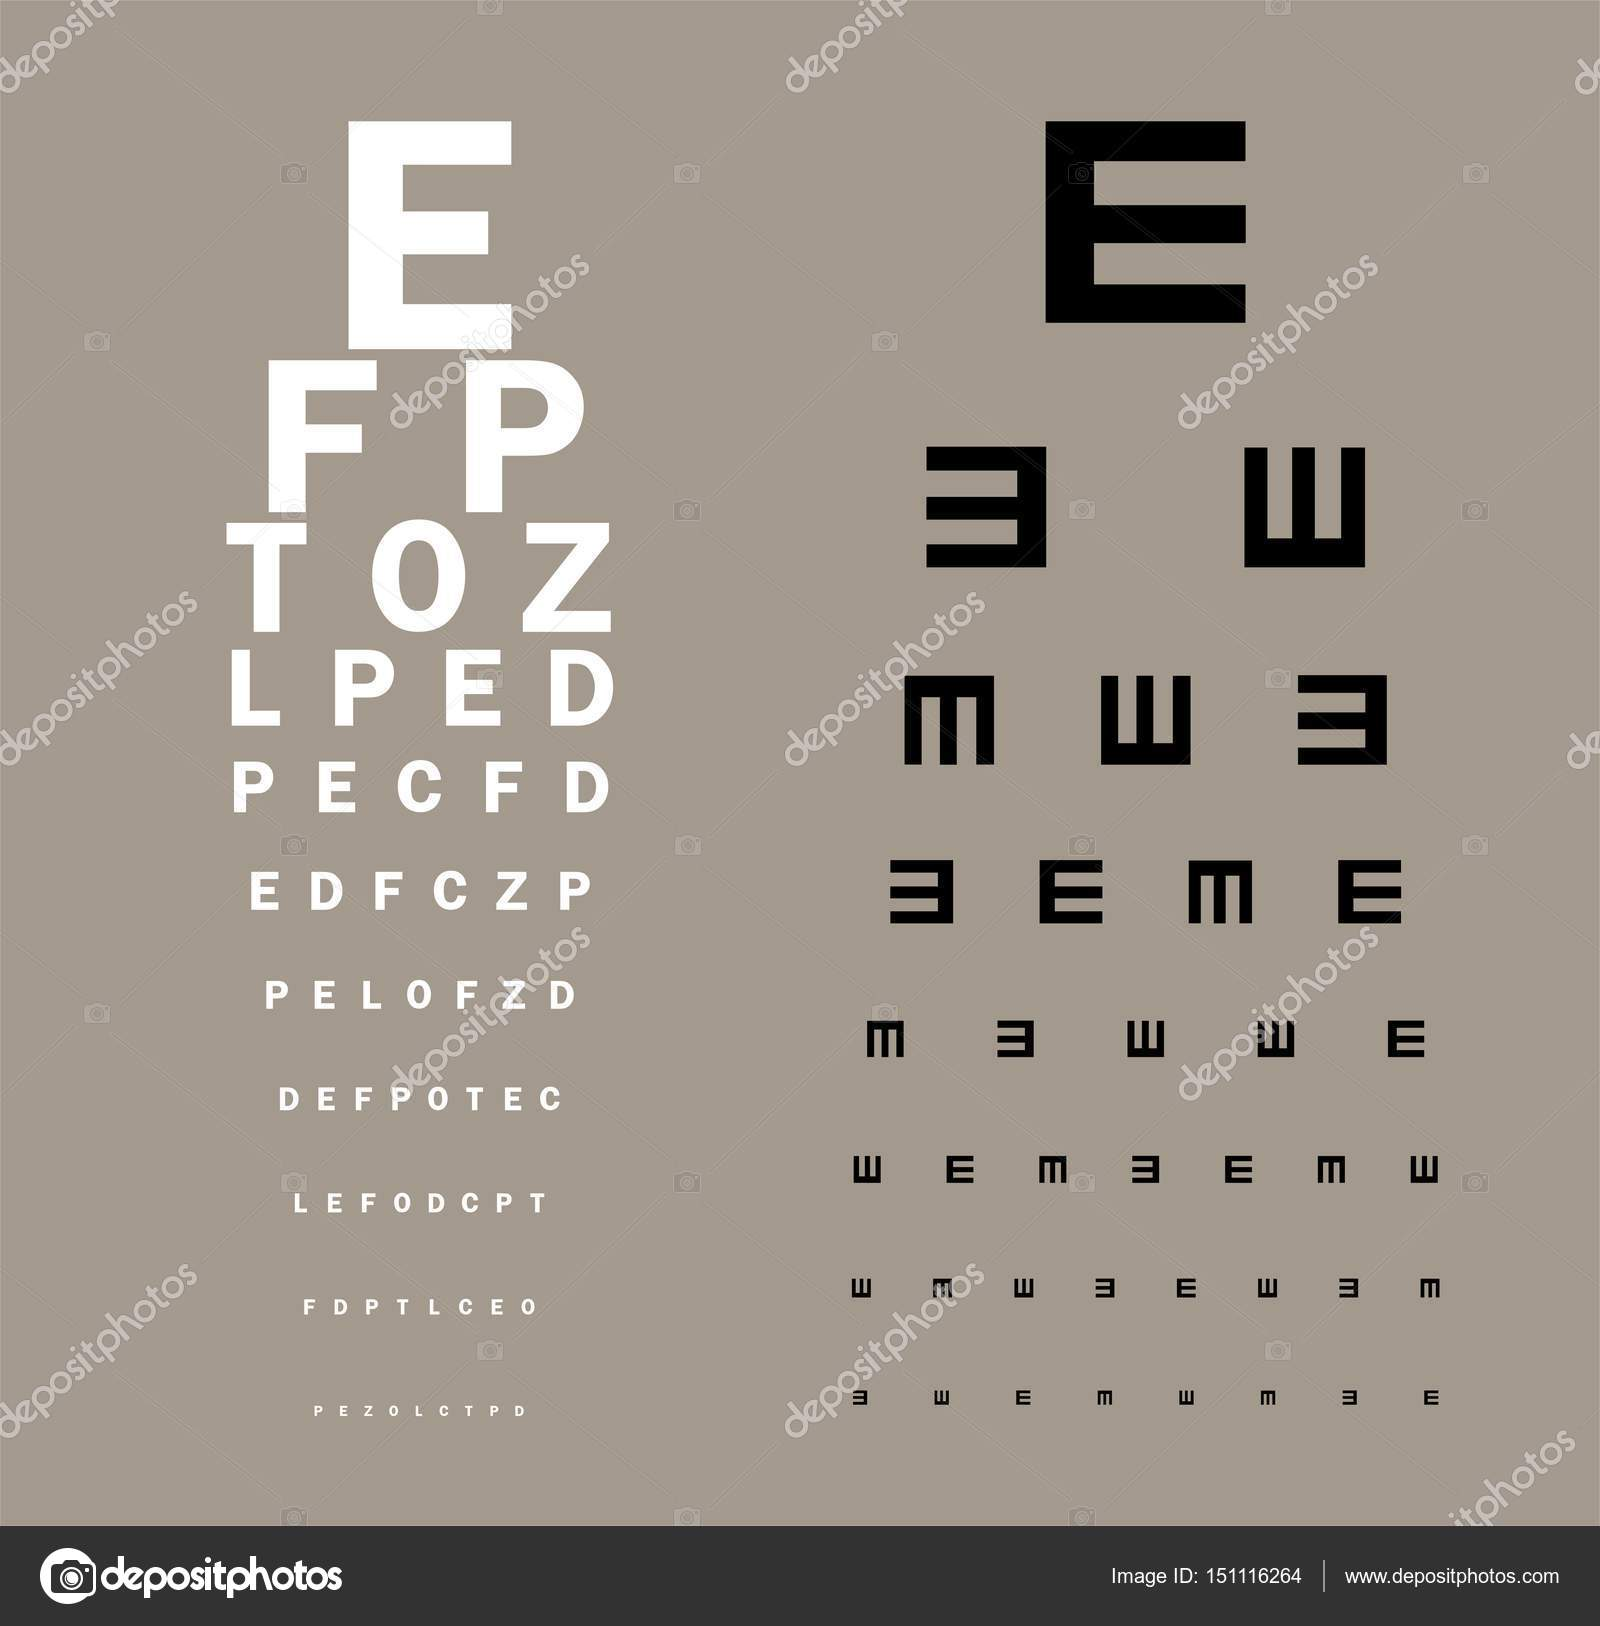 Eyes test chart stock vector vabadov 151116264 eyes test chart stock vector geenschuldenfo Image collections